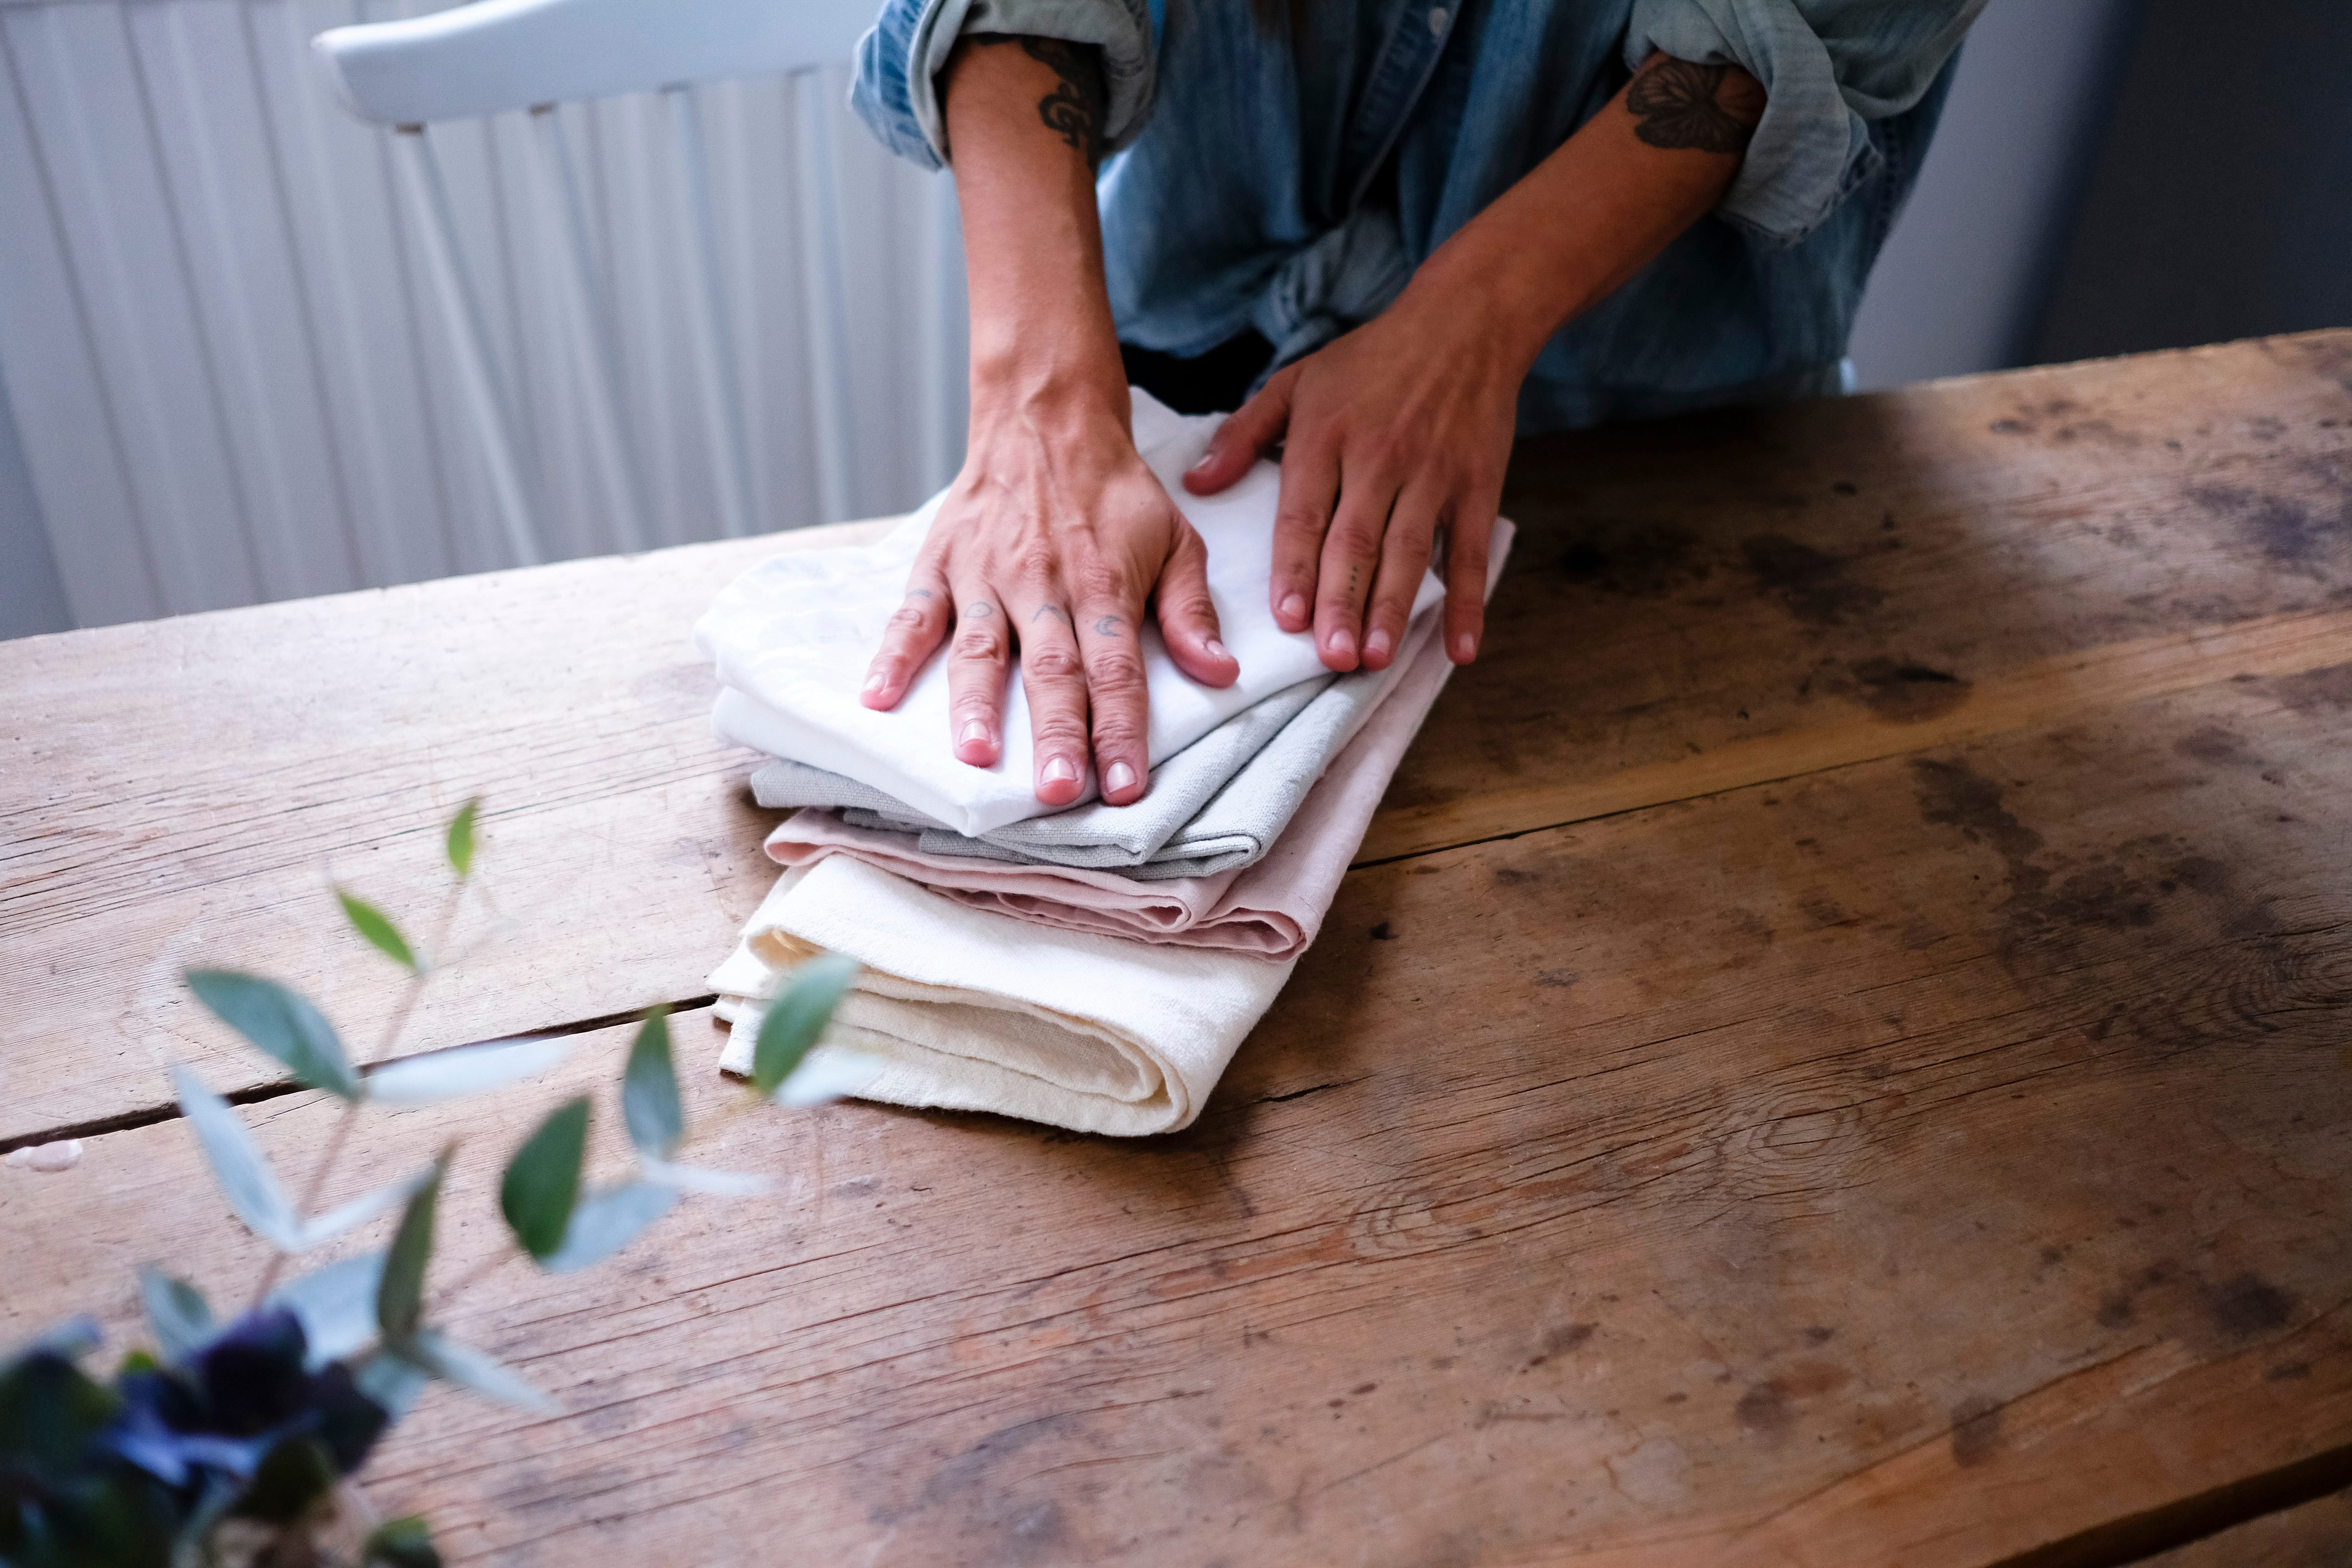 Midsection of woman folding napkins while standing at wooden table in kitchen